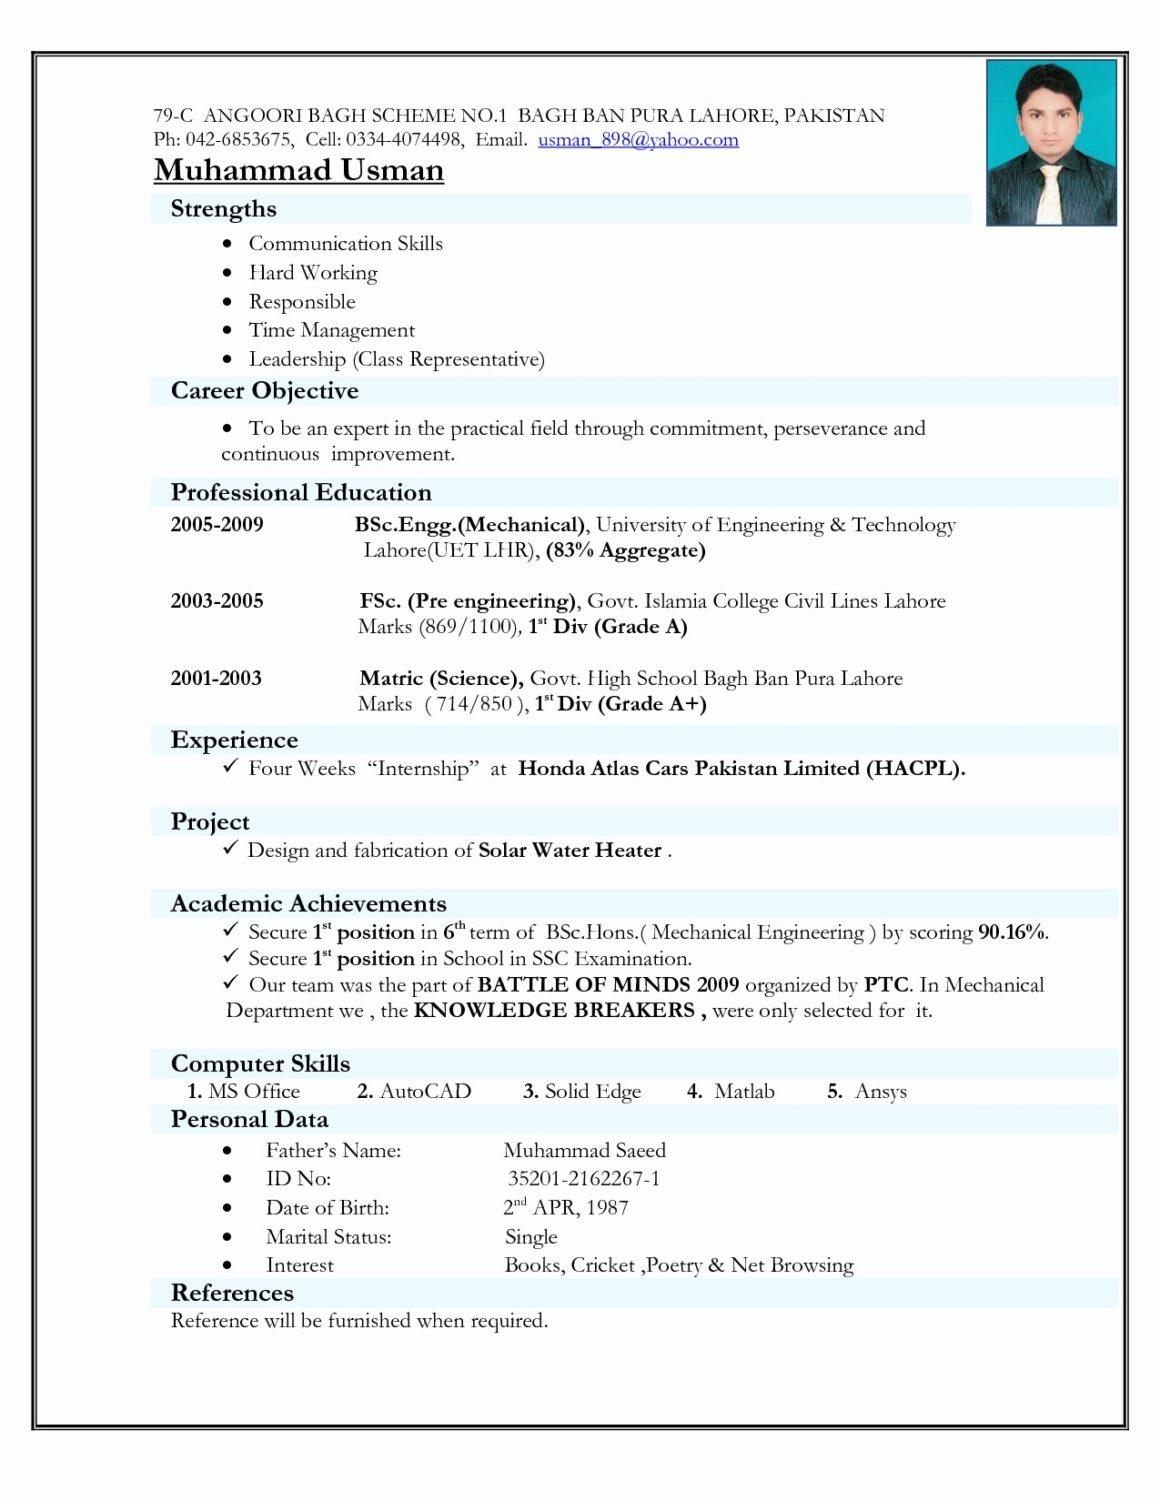 Download Resume Format Pdf For Freshers